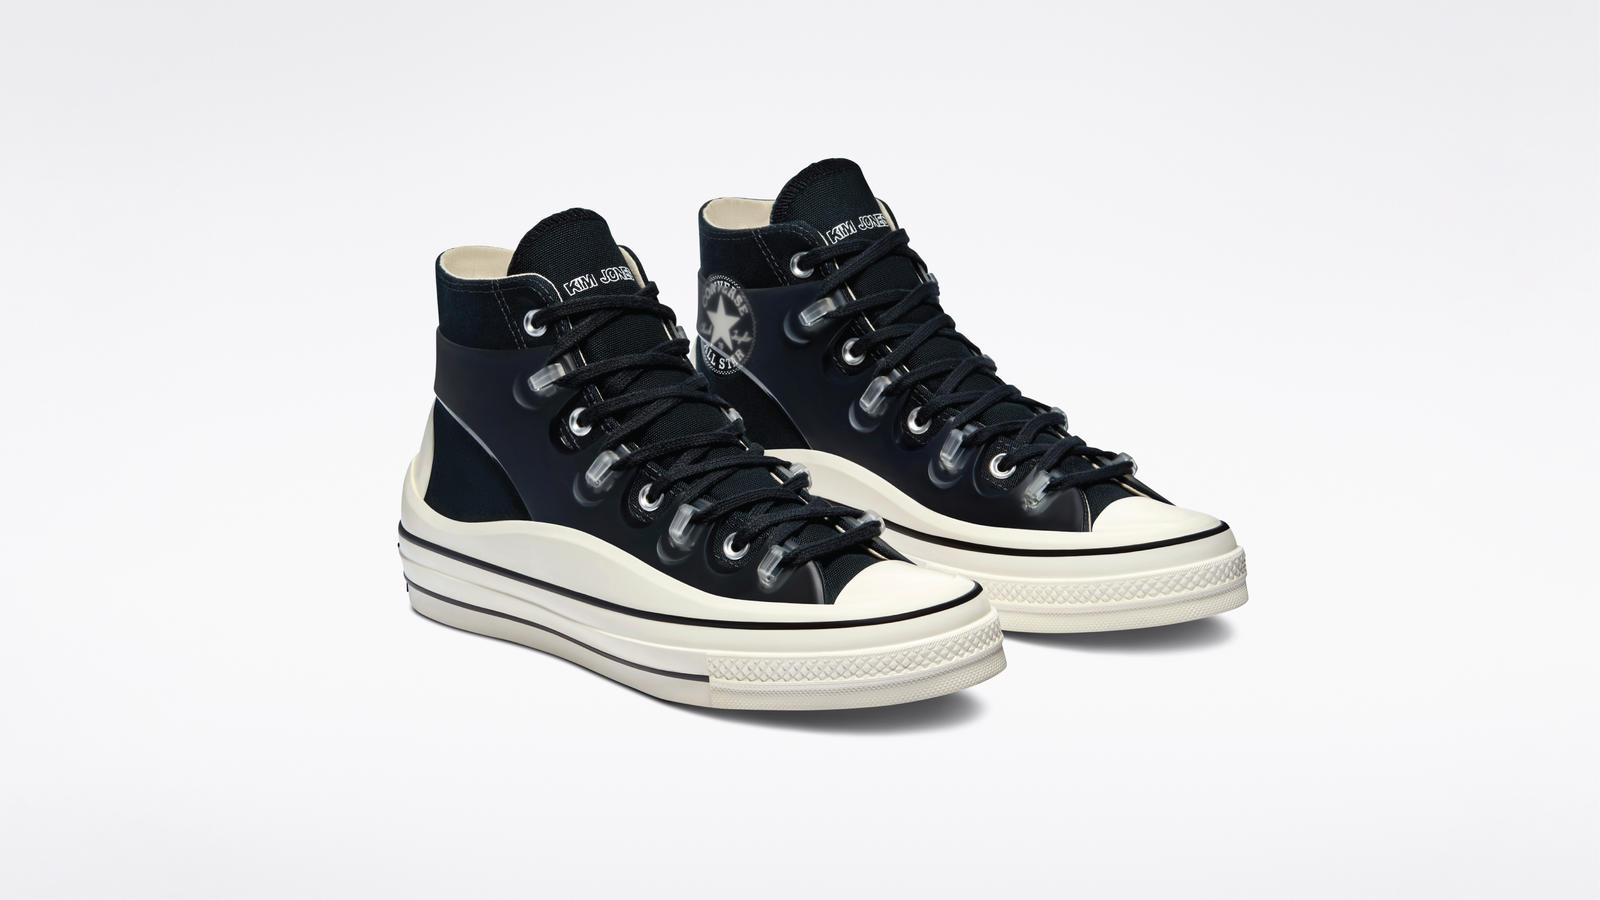 Converse x Kim Jones Chuck 70 and Apparel  6